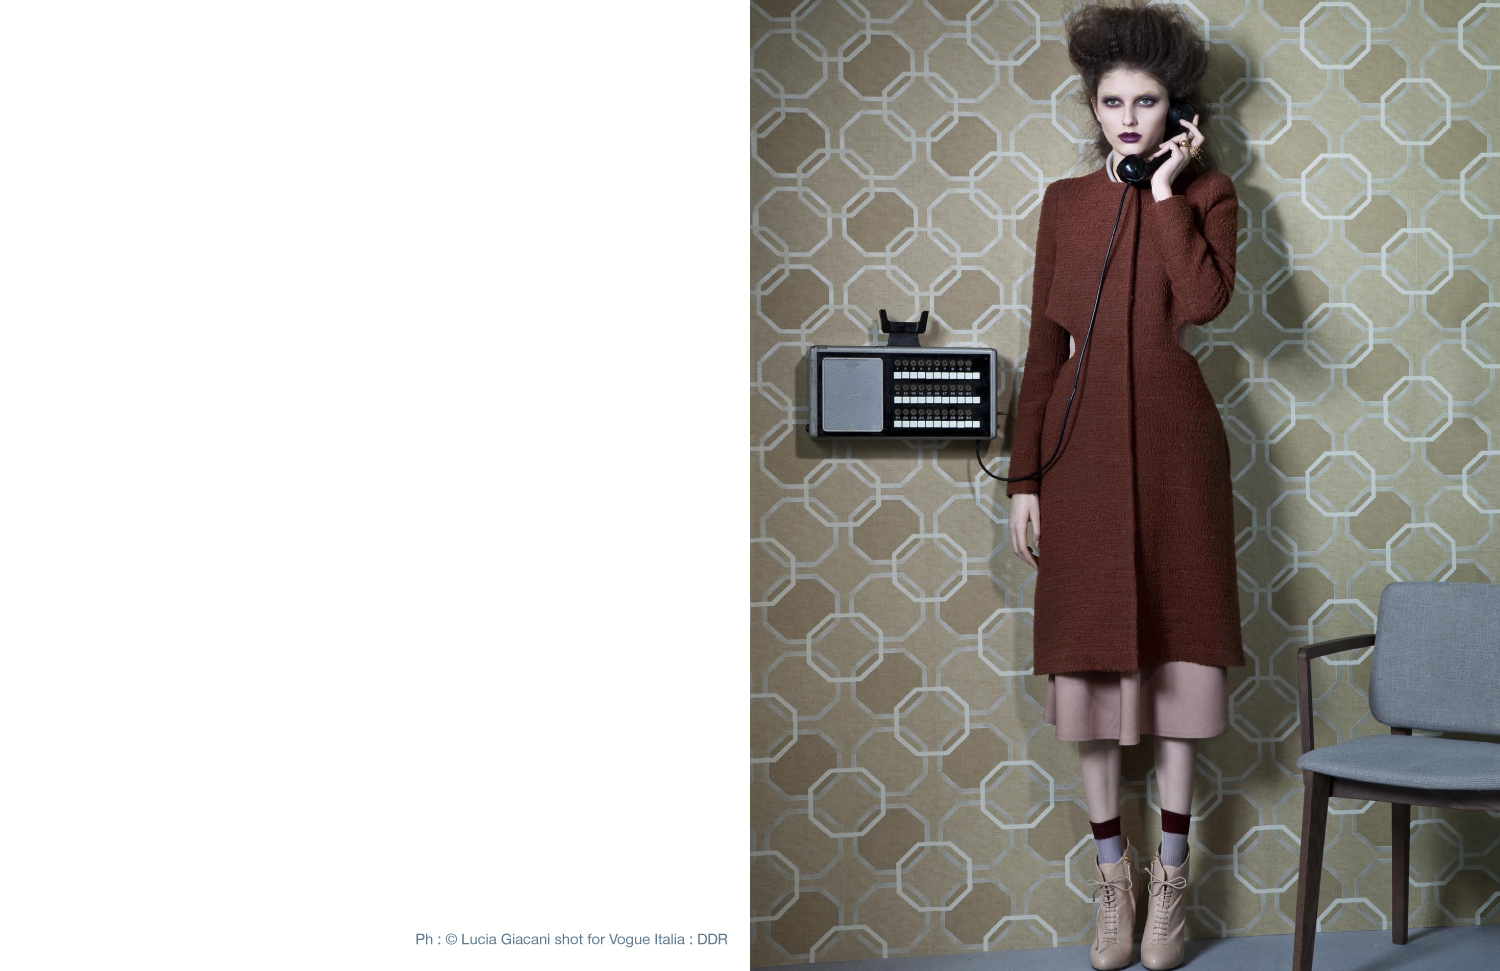 Voir Fashion Magazine Issue 8 - In Focus feature Ph : © Lucia Giacani shot for Vogue Italia : DDR